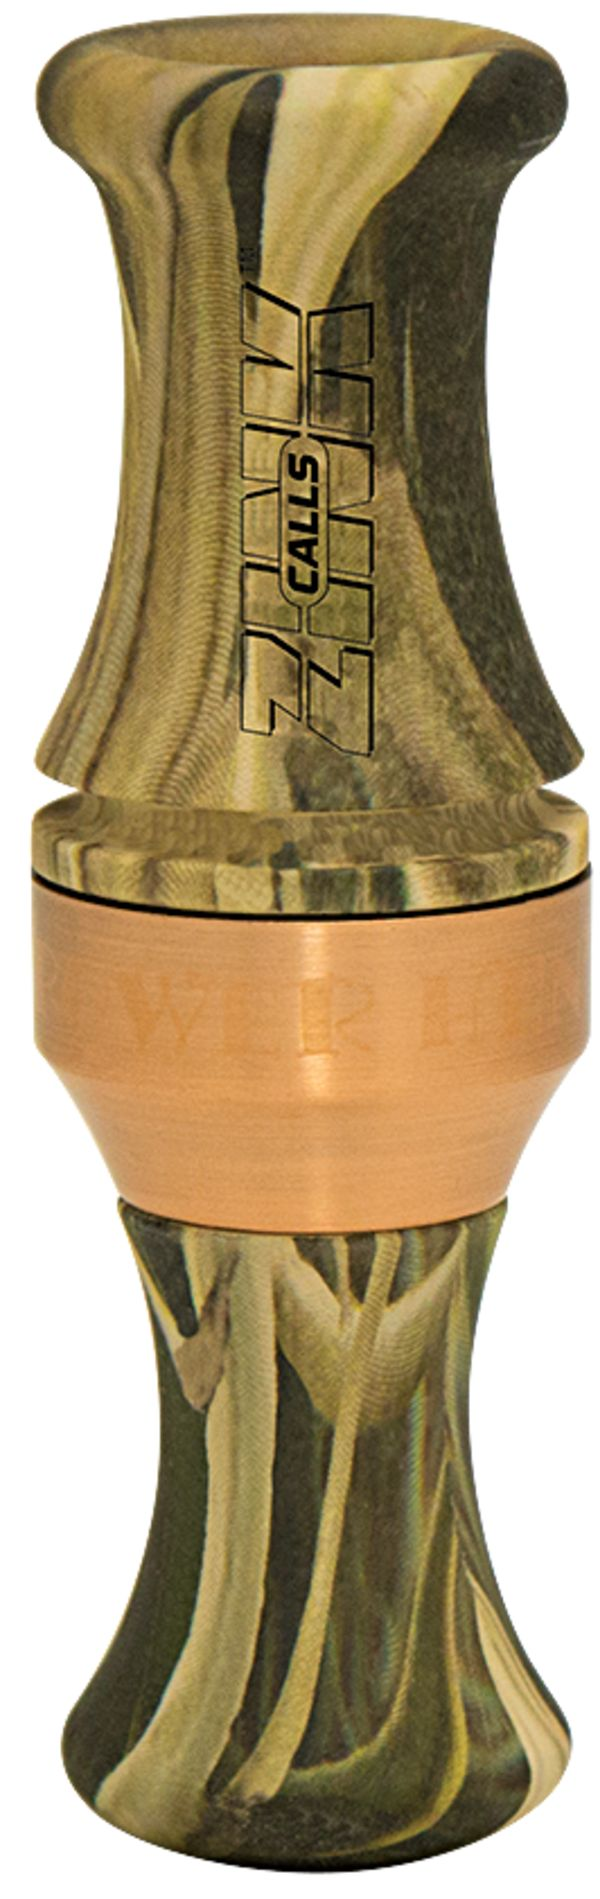 Trying to select a new duck call can be an overwhelming experience, causing you to slowly go cross-eyed as you thumb through page after page of a sporting-goods catalog and read umpteen product descriptions that all sound the same. Luckily, you don't have to weed through the merits of dozens of calls. I've narrowed it down to five that have served me well over the years. Each has something different to offer and deserves a look.